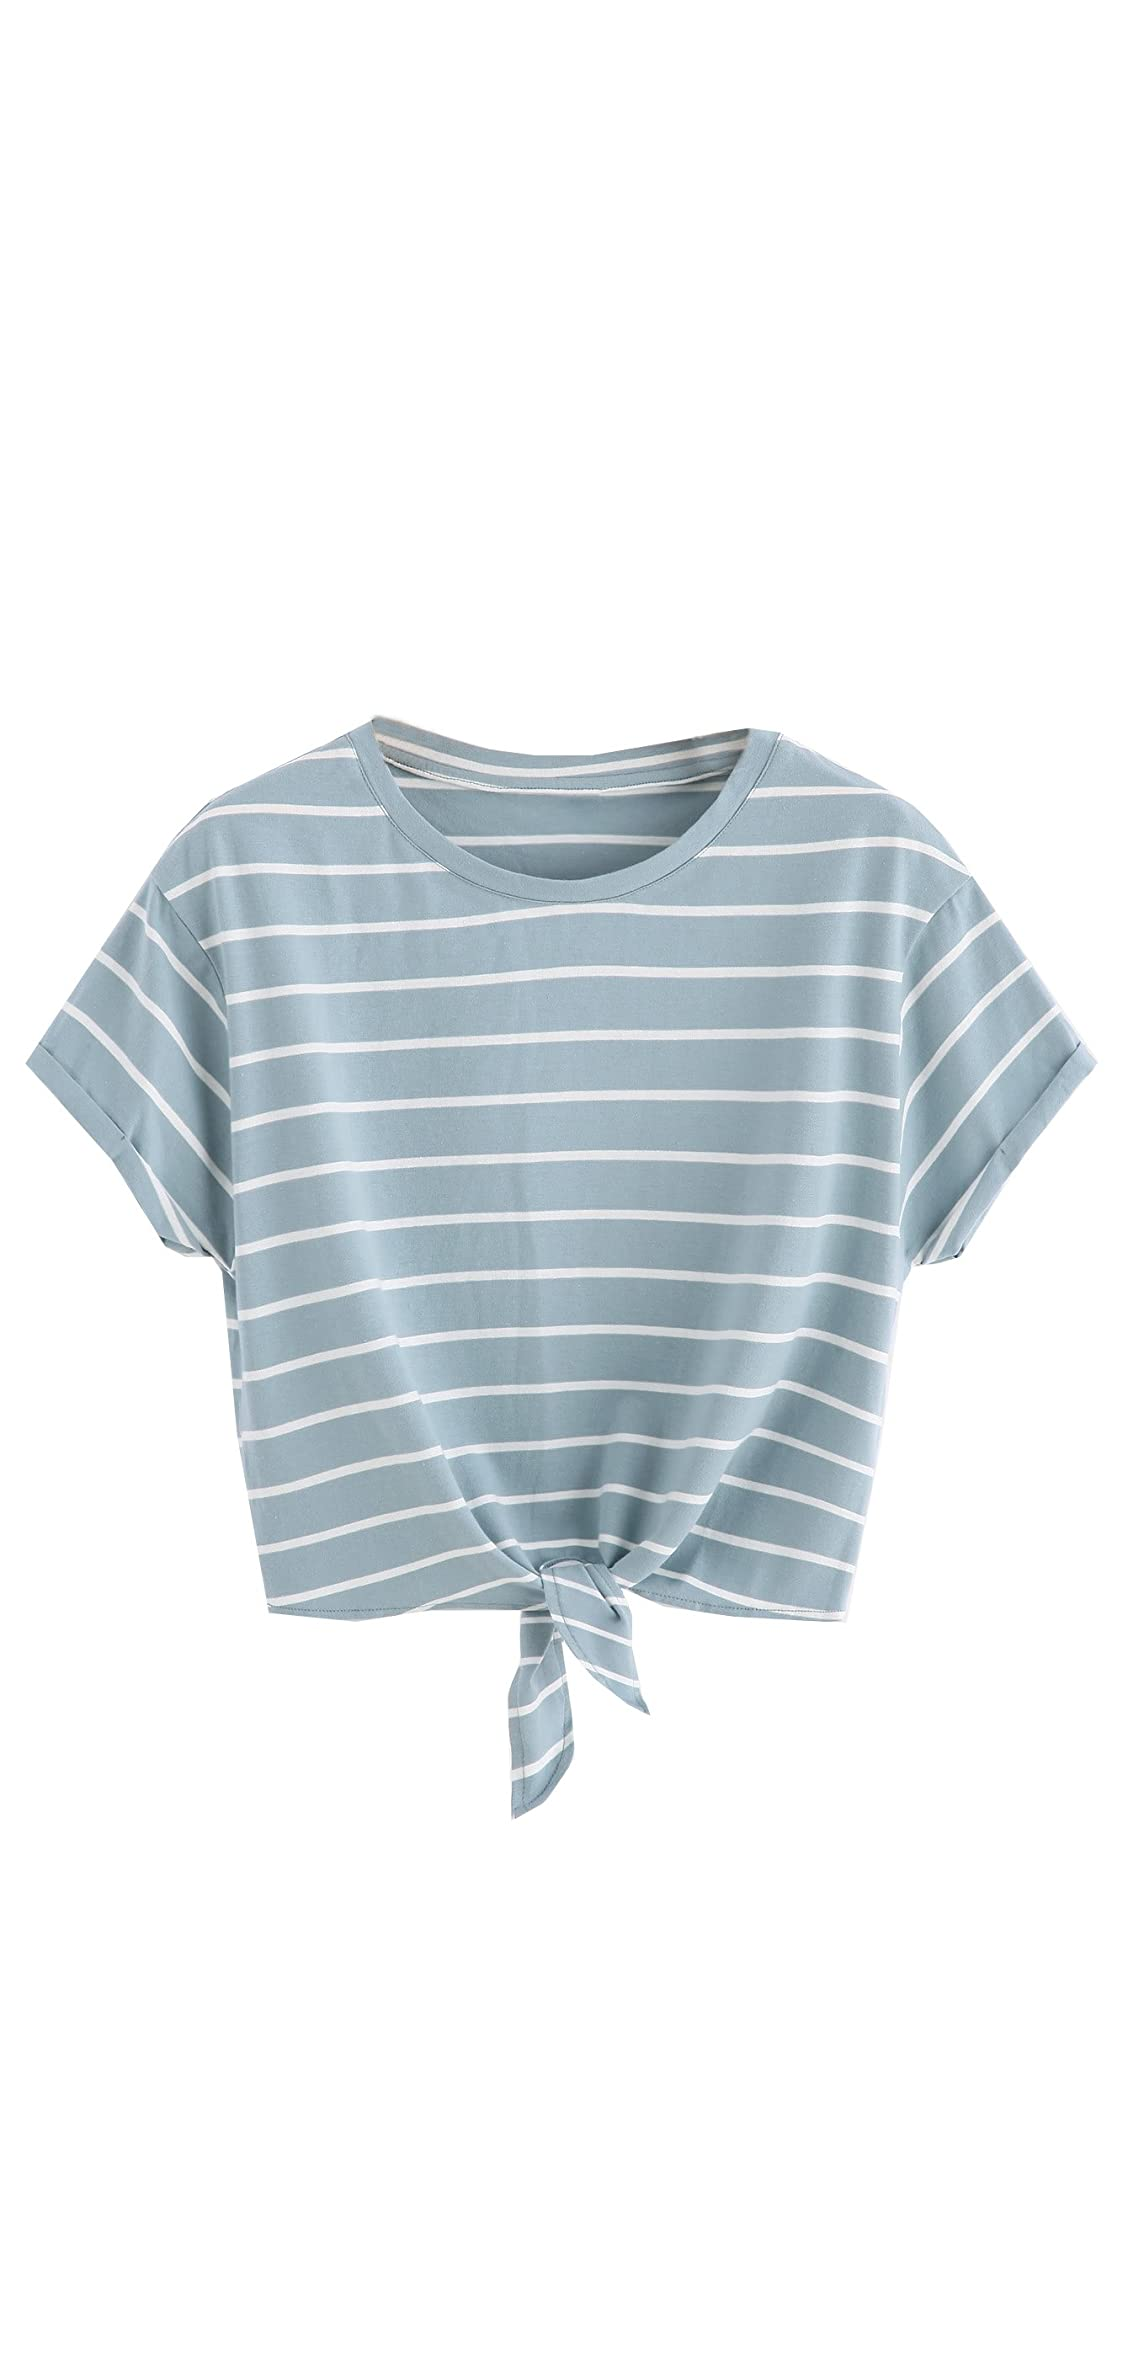 Women's Knot Front Cuffed Sleeve Striped Crop Top Tee